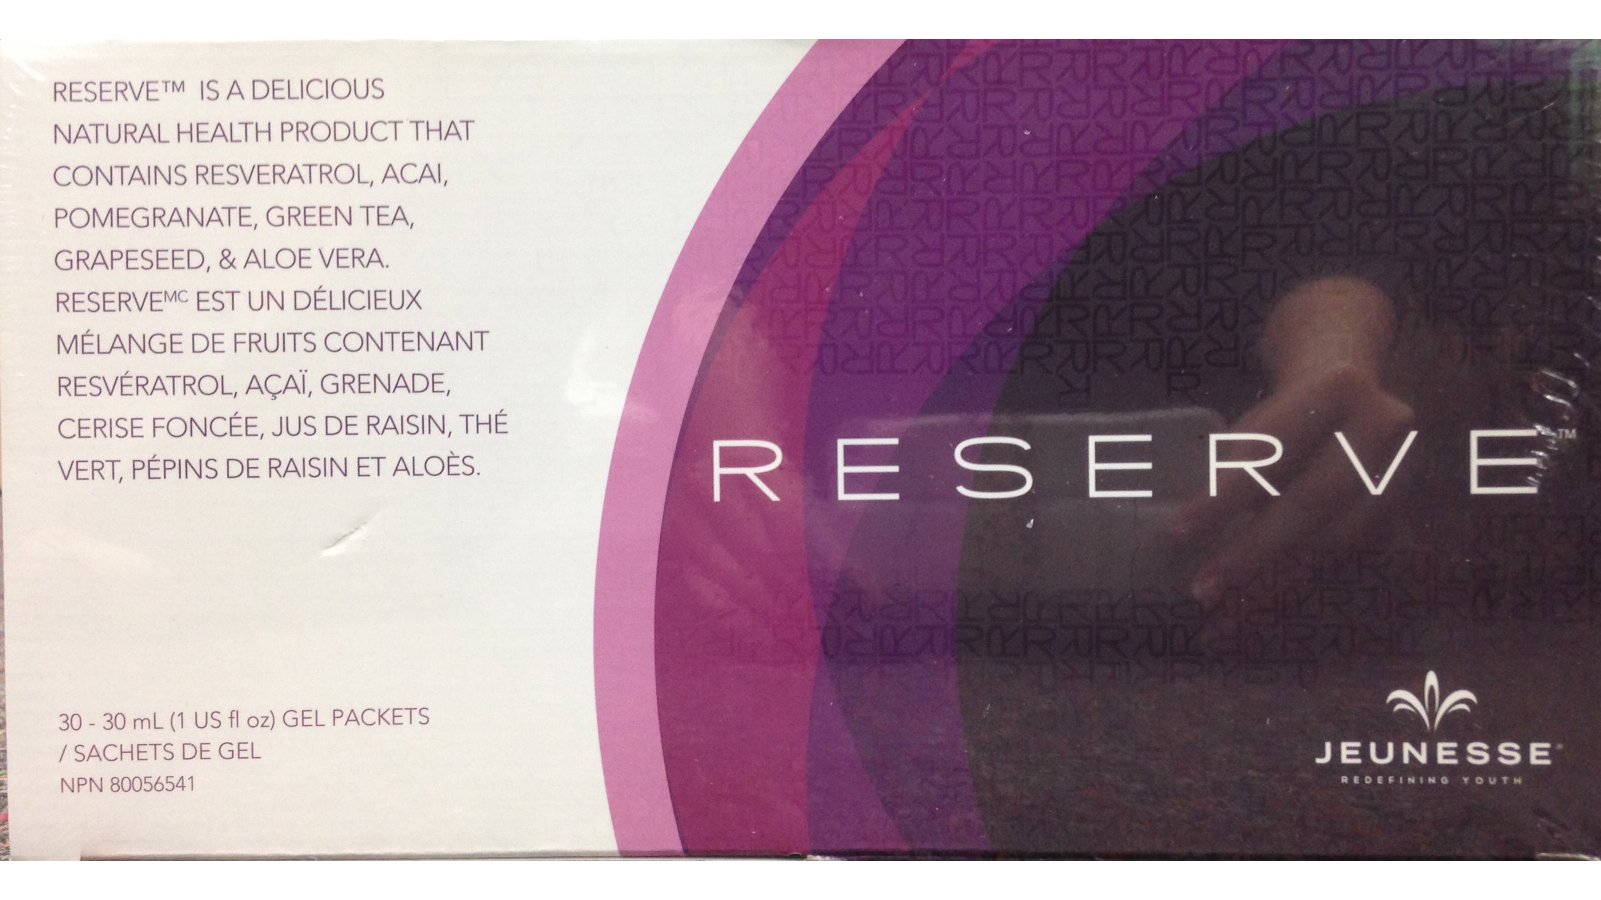 Pack-of-3 Boxes Jeunesse Reserve Antioxidant Botanical Fruit Blend -3x30 (1 Oz) Gel Packets by Jeunesse